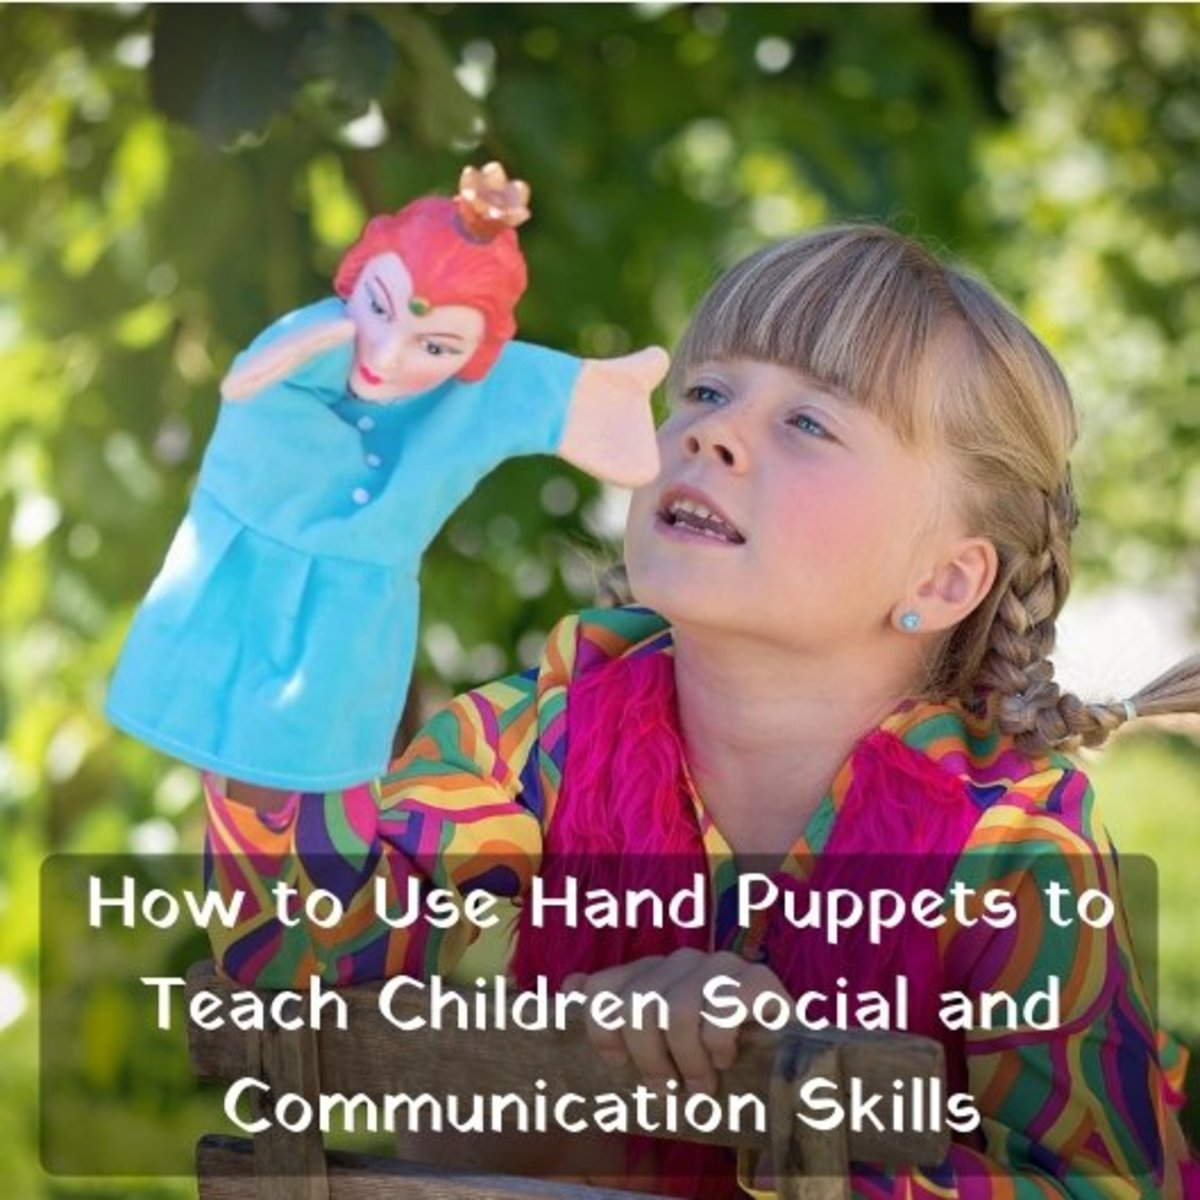 How Hand Puppets Help Children Learn Valuable Skills